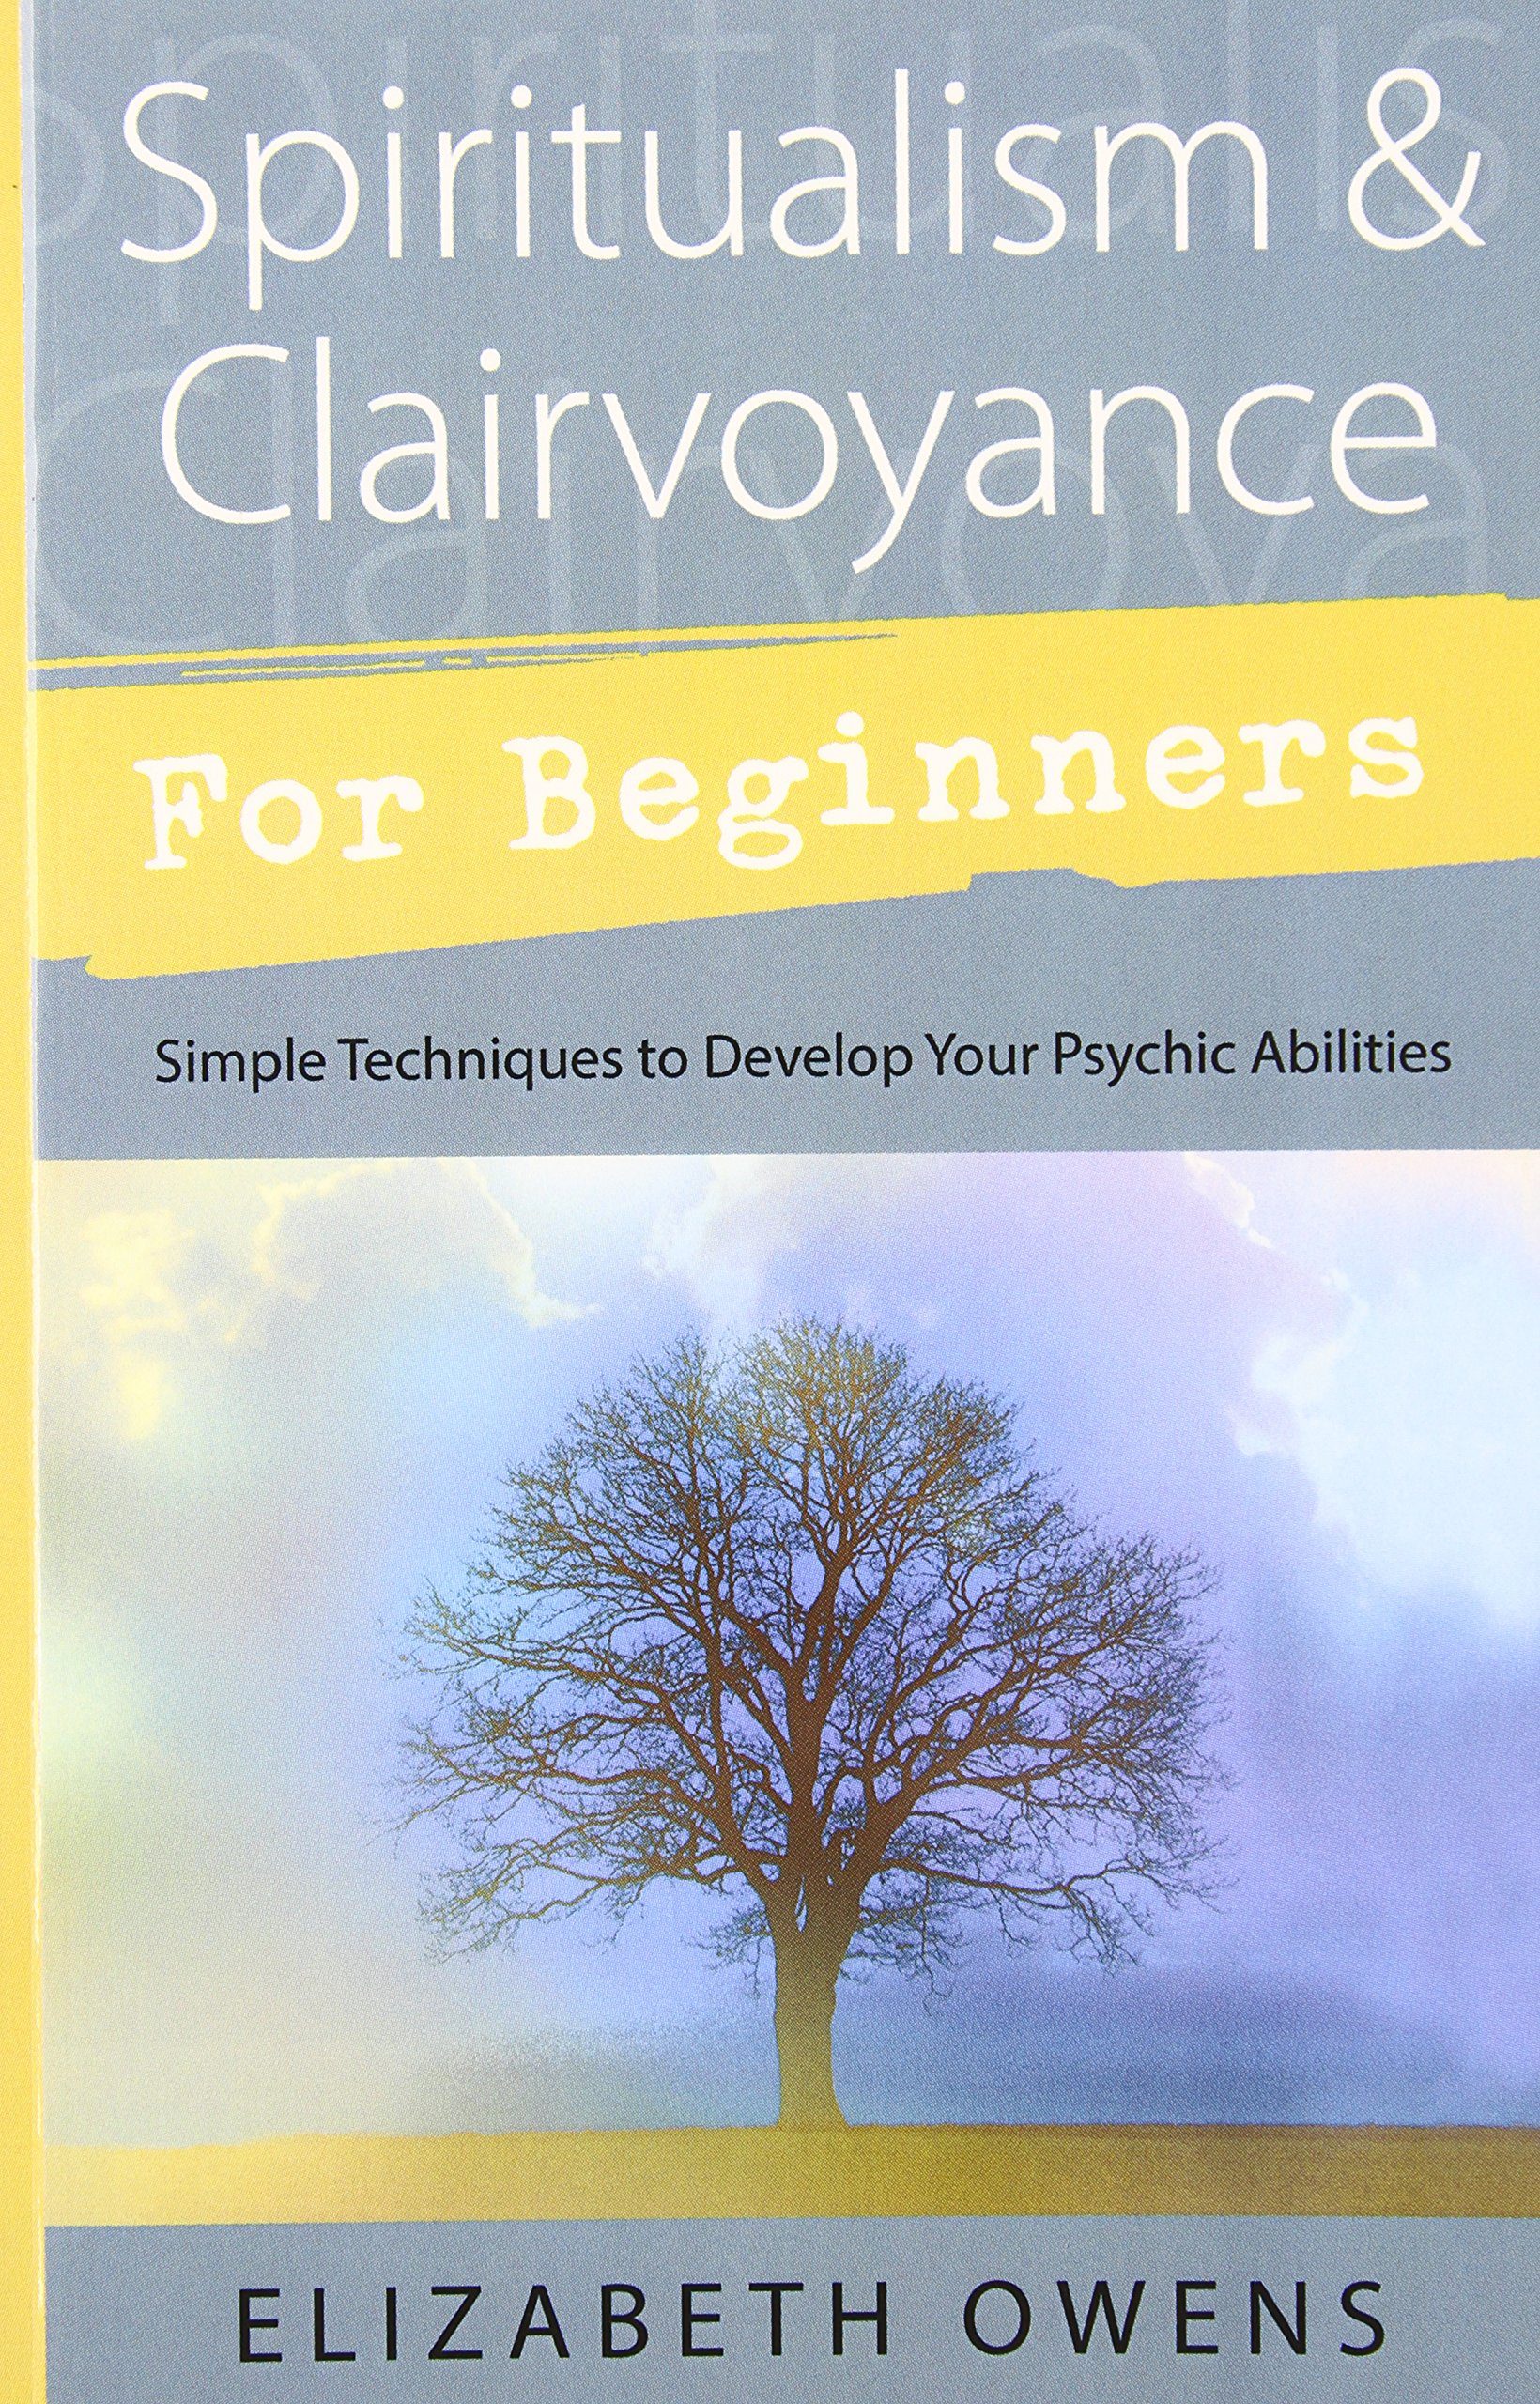 Spiritualism & Clairvoyance for Beginners: Simple Techniques to Develop Your Psychic Abilities (For Beginners (Llewellyn's)) pdf